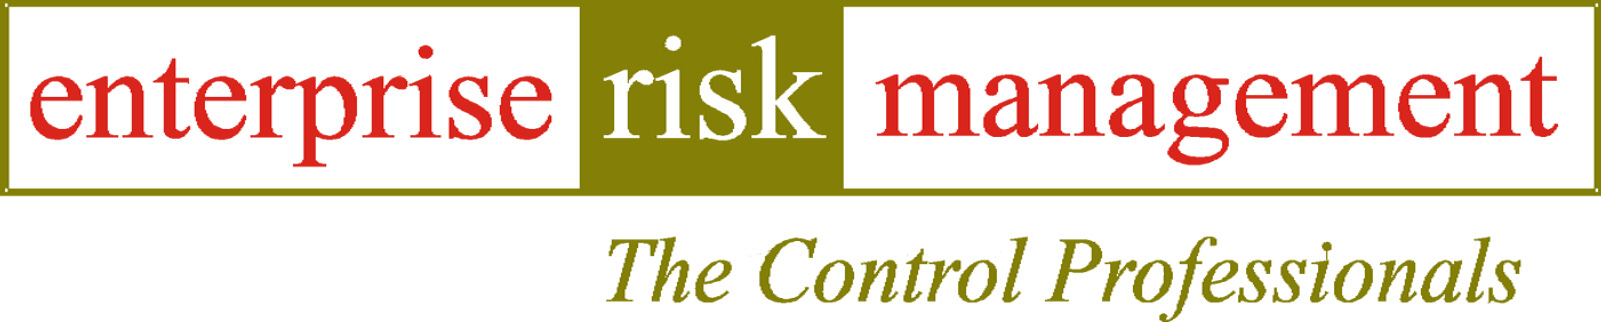 com. Enterprise Risk Management: At a Glance ERM brings clients the highest level of expertise to assess and address risks, comply with standards and regulations and mitigate risks, using integrated